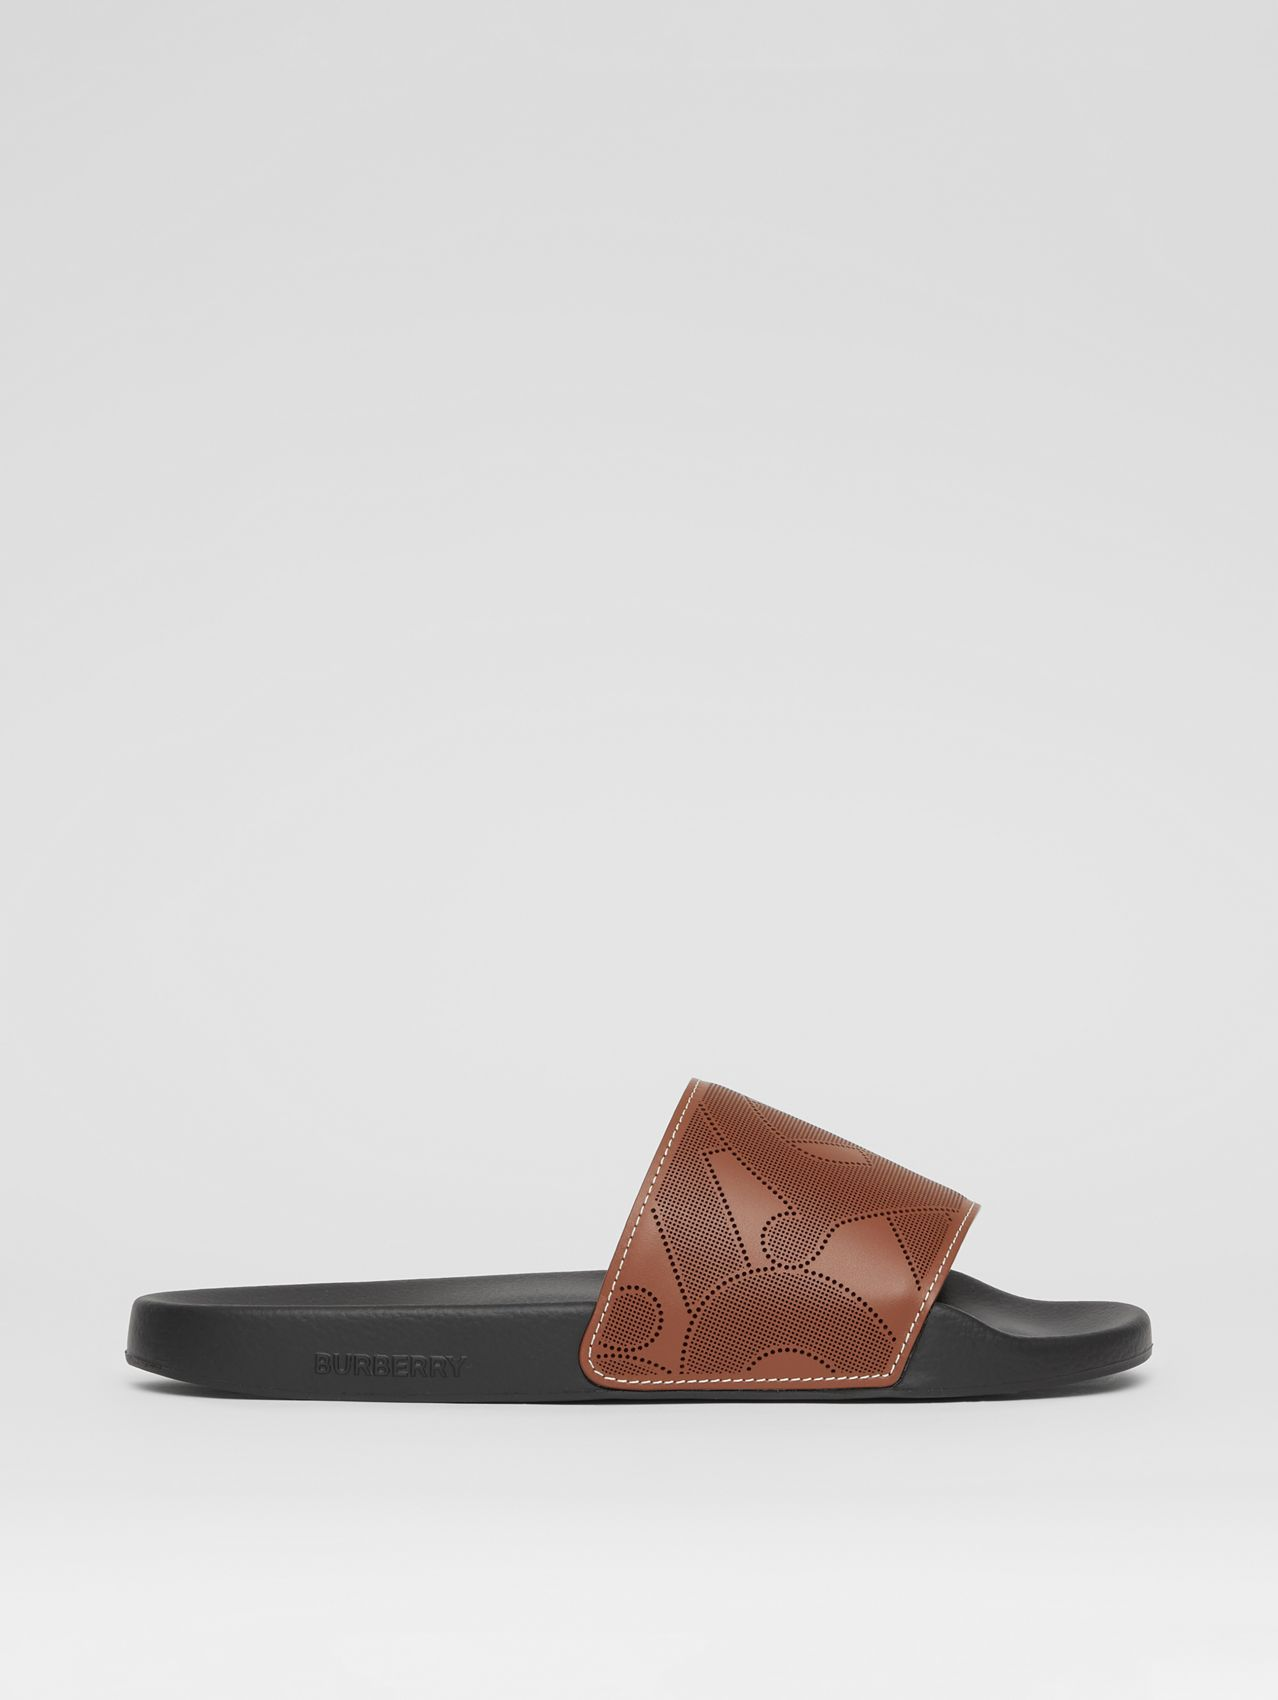 Perforated Monogram Leather Slides in Tan